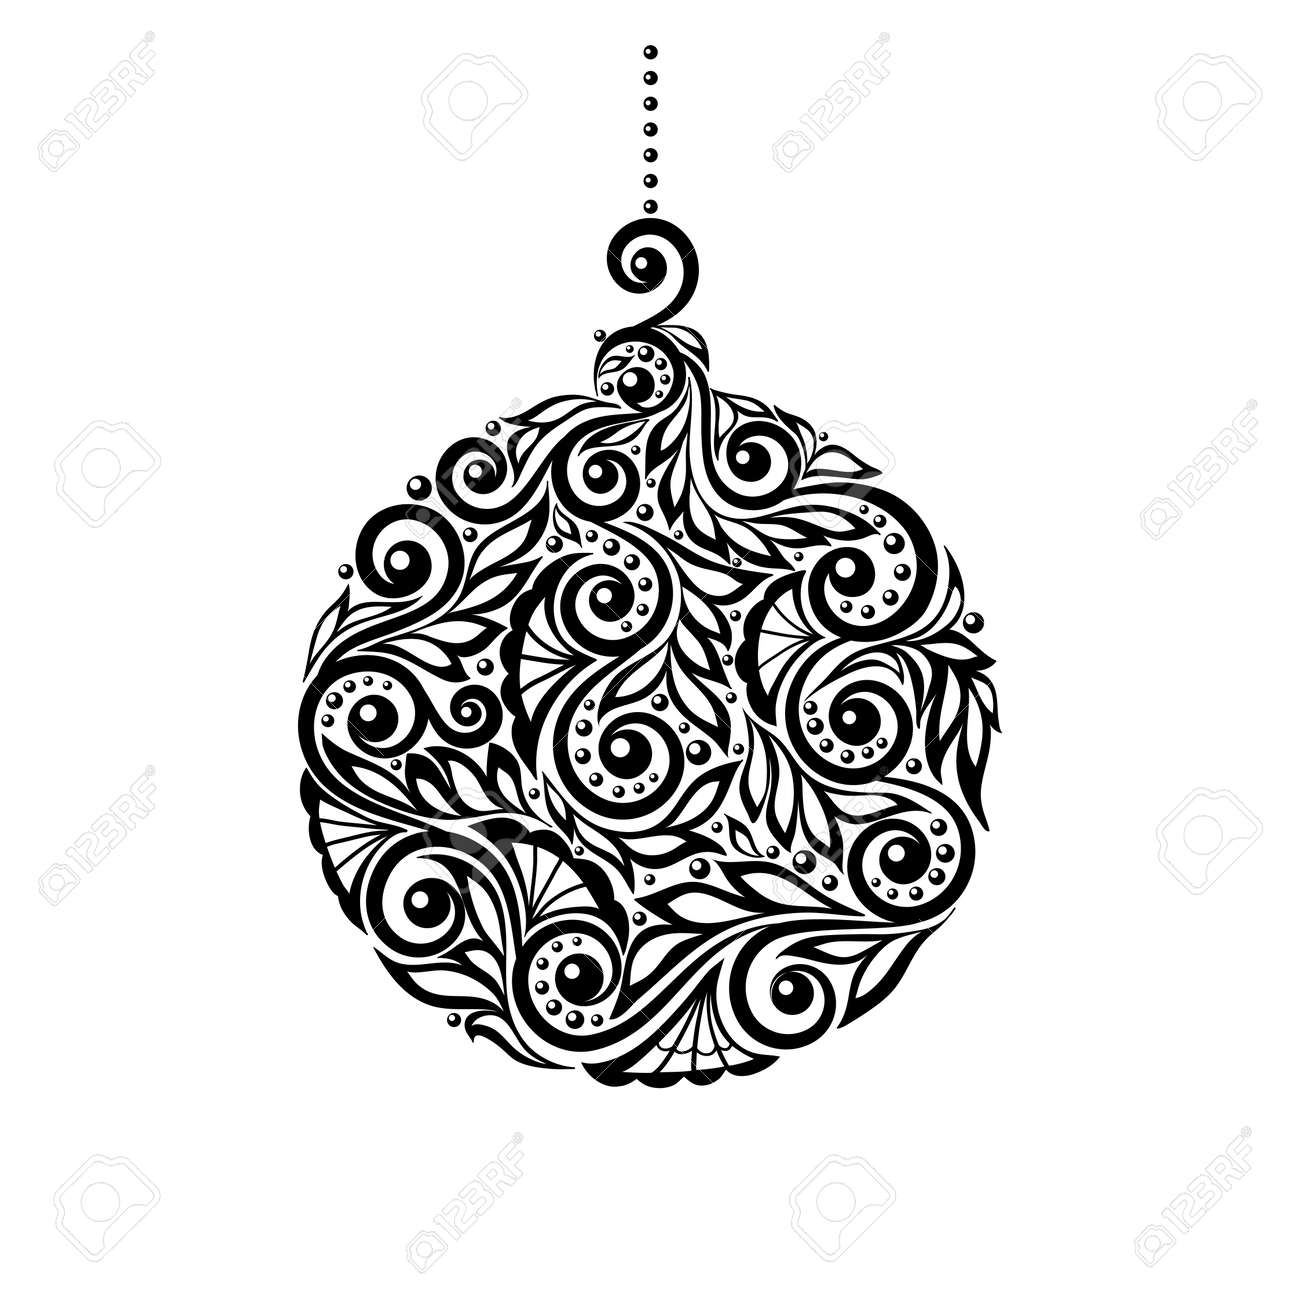 Black And White Christmas Ball With A Floral Design Many Similarities To The Authors Profile